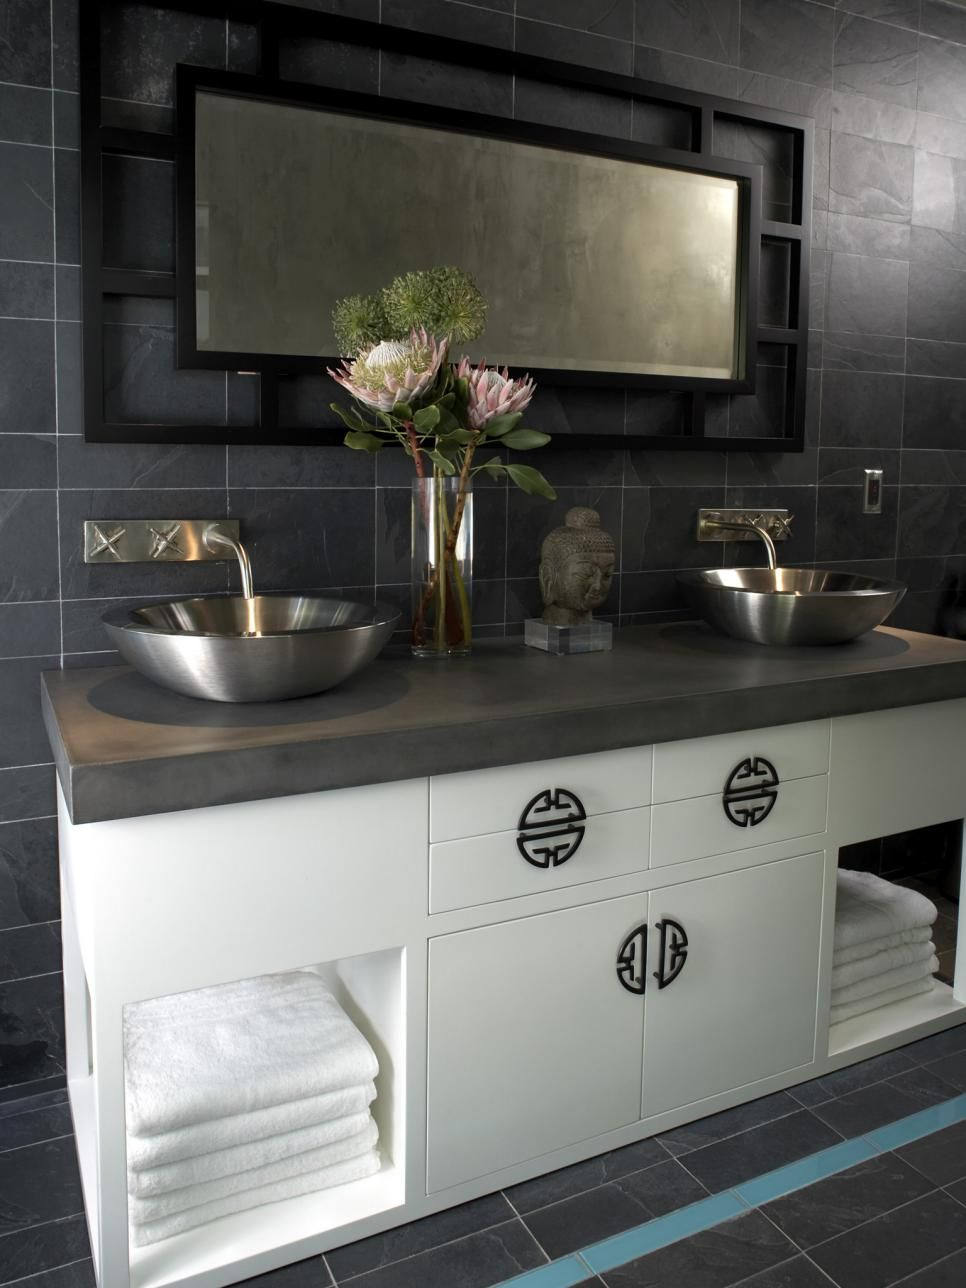 Clean Lines, Vessel Sinks And Asian Style Cabinet Hardware Give This  Gray Tiled